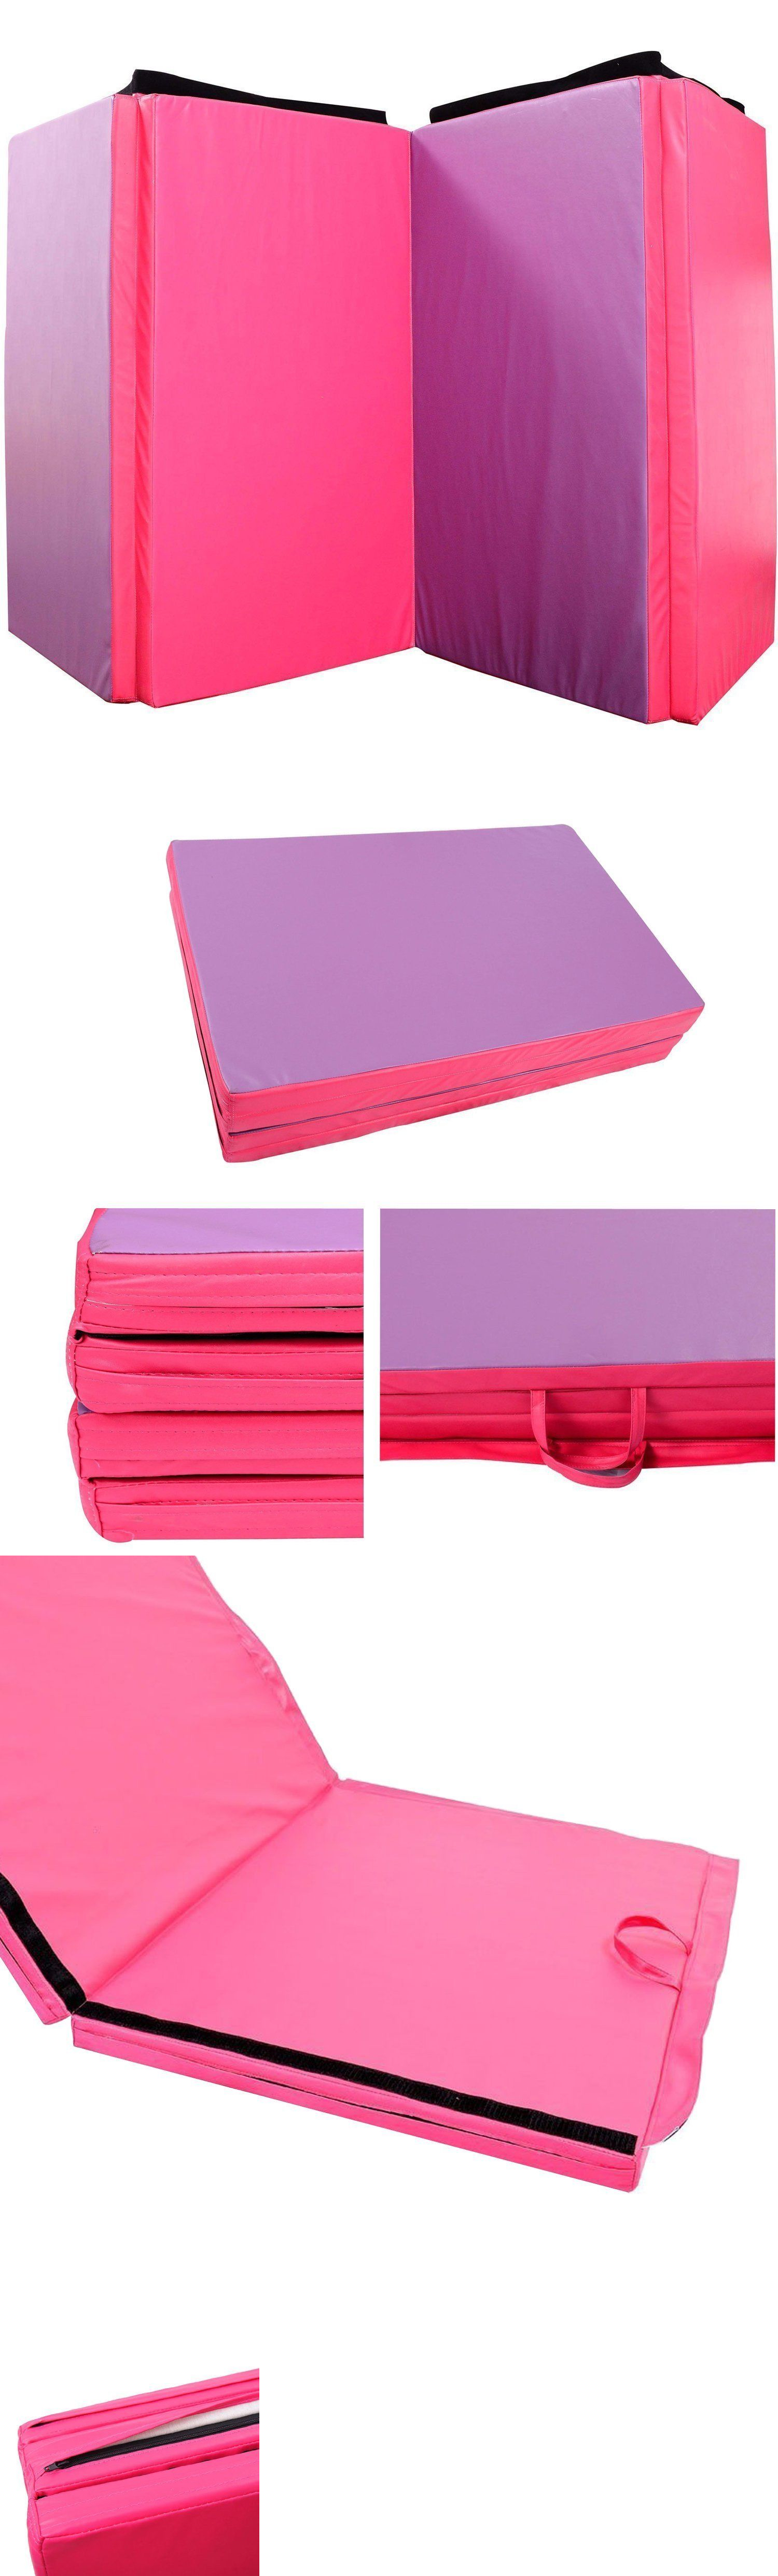 mat diy gymnastics w track inflatable mats cheerleading air customized floor size gym pump itm tumbling